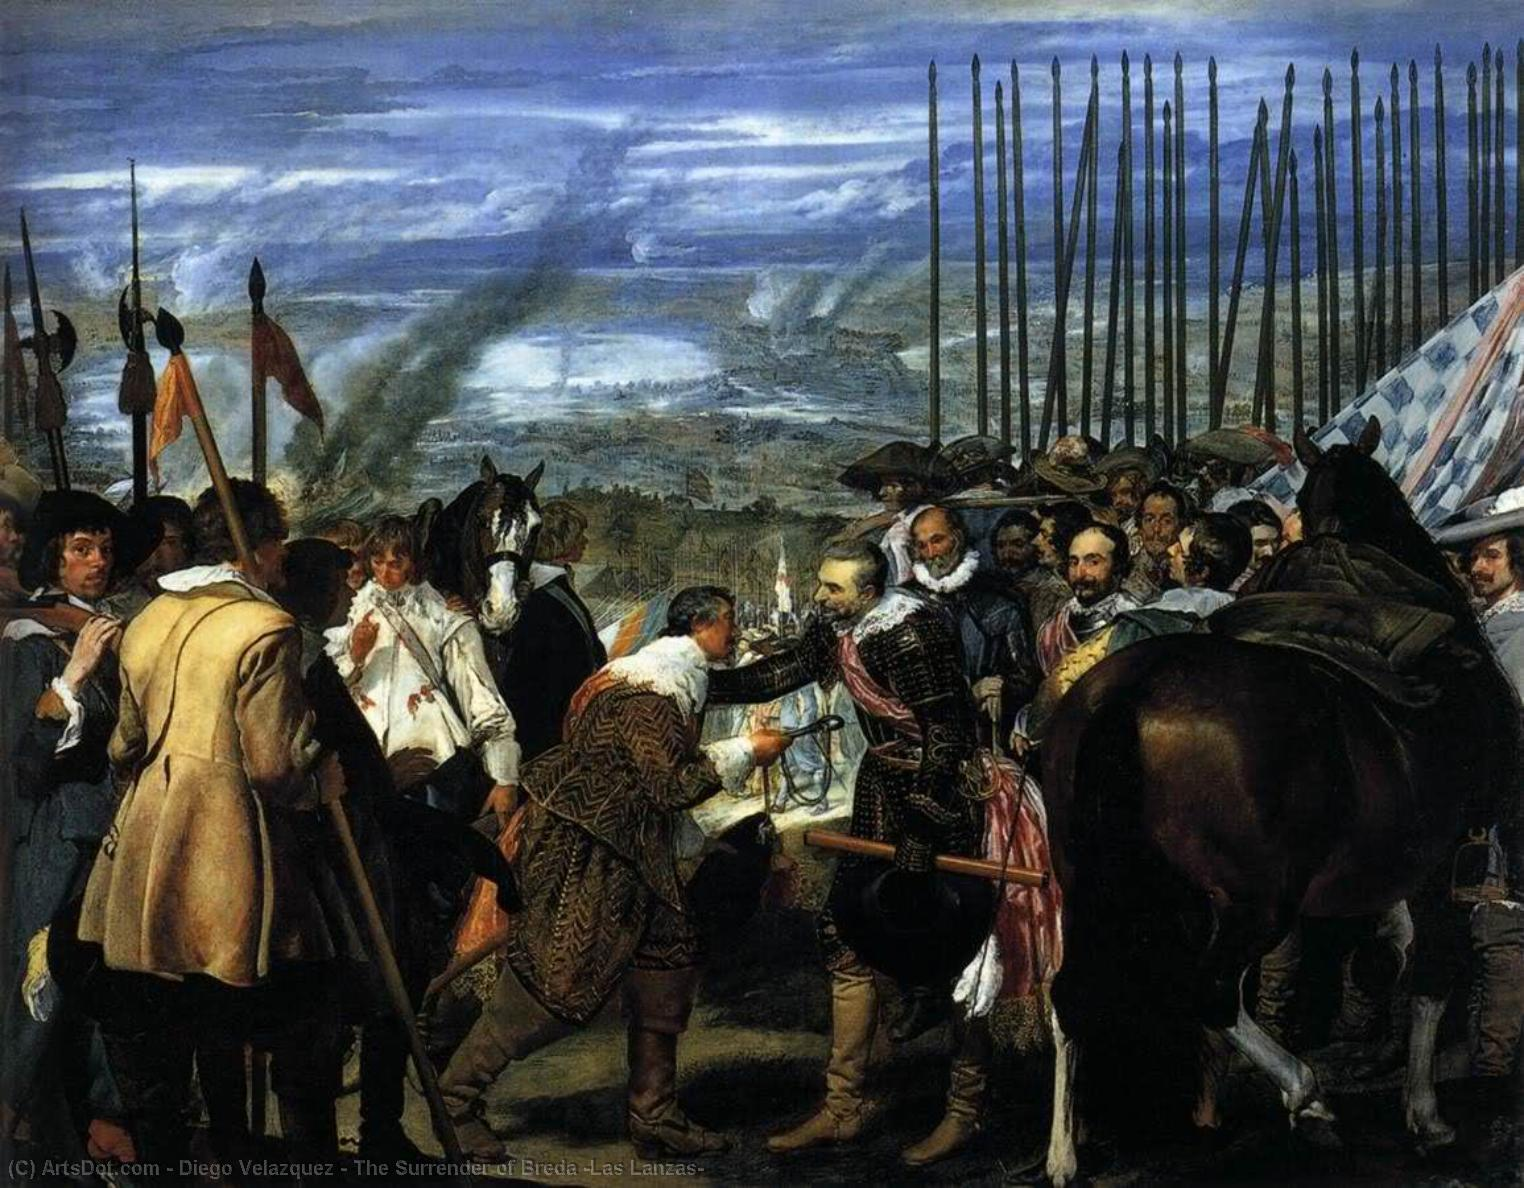 Wikioo.org - The Encyclopedia of Fine Arts - Painting, Artwork by Diego Velazquez - The Surrender of Breda (Las Lanzas)